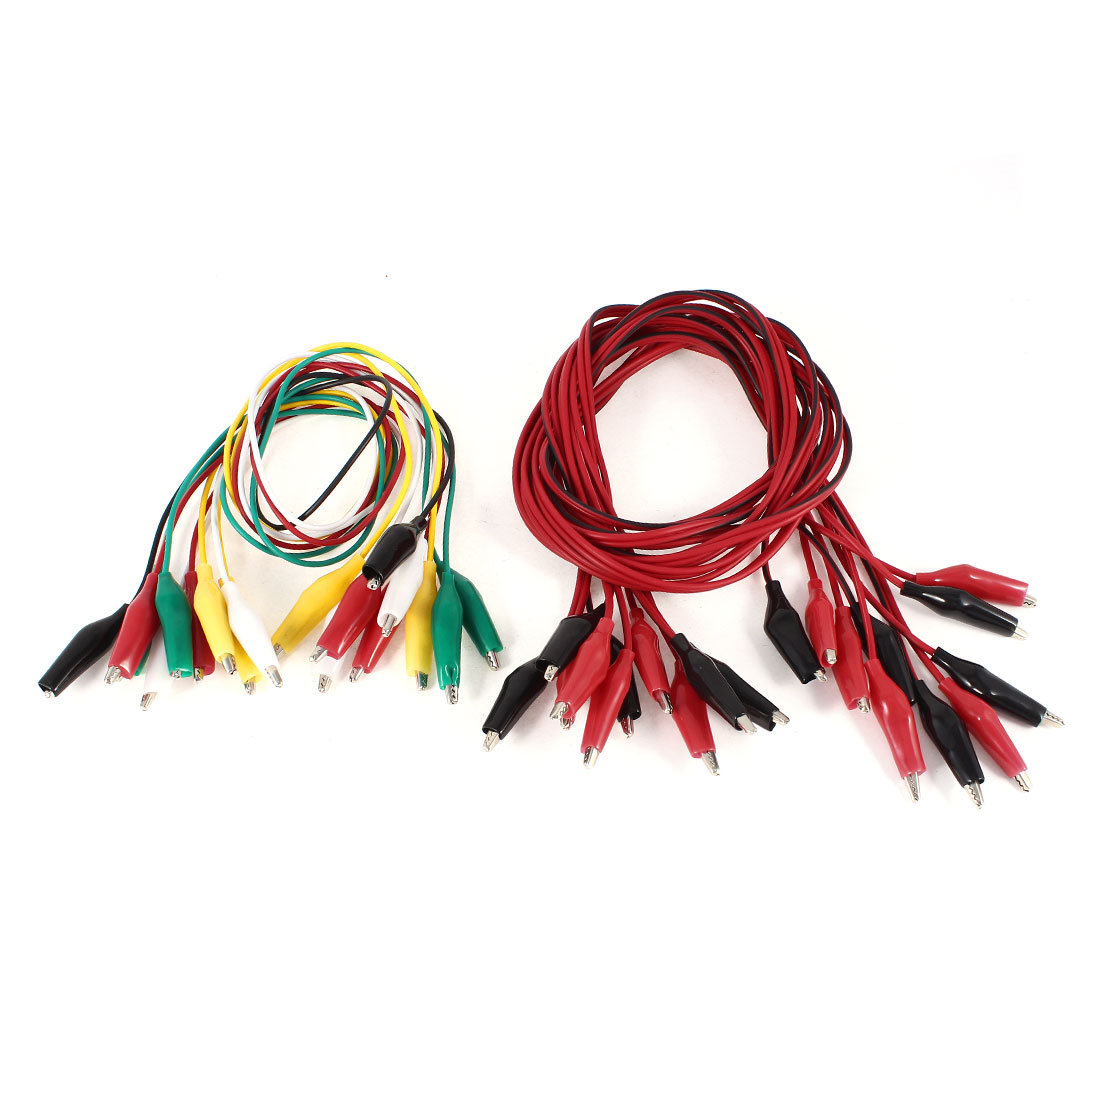 15 Pcs Single/Dual Double-ended Wire Testing Work Alligator Clips Jumper